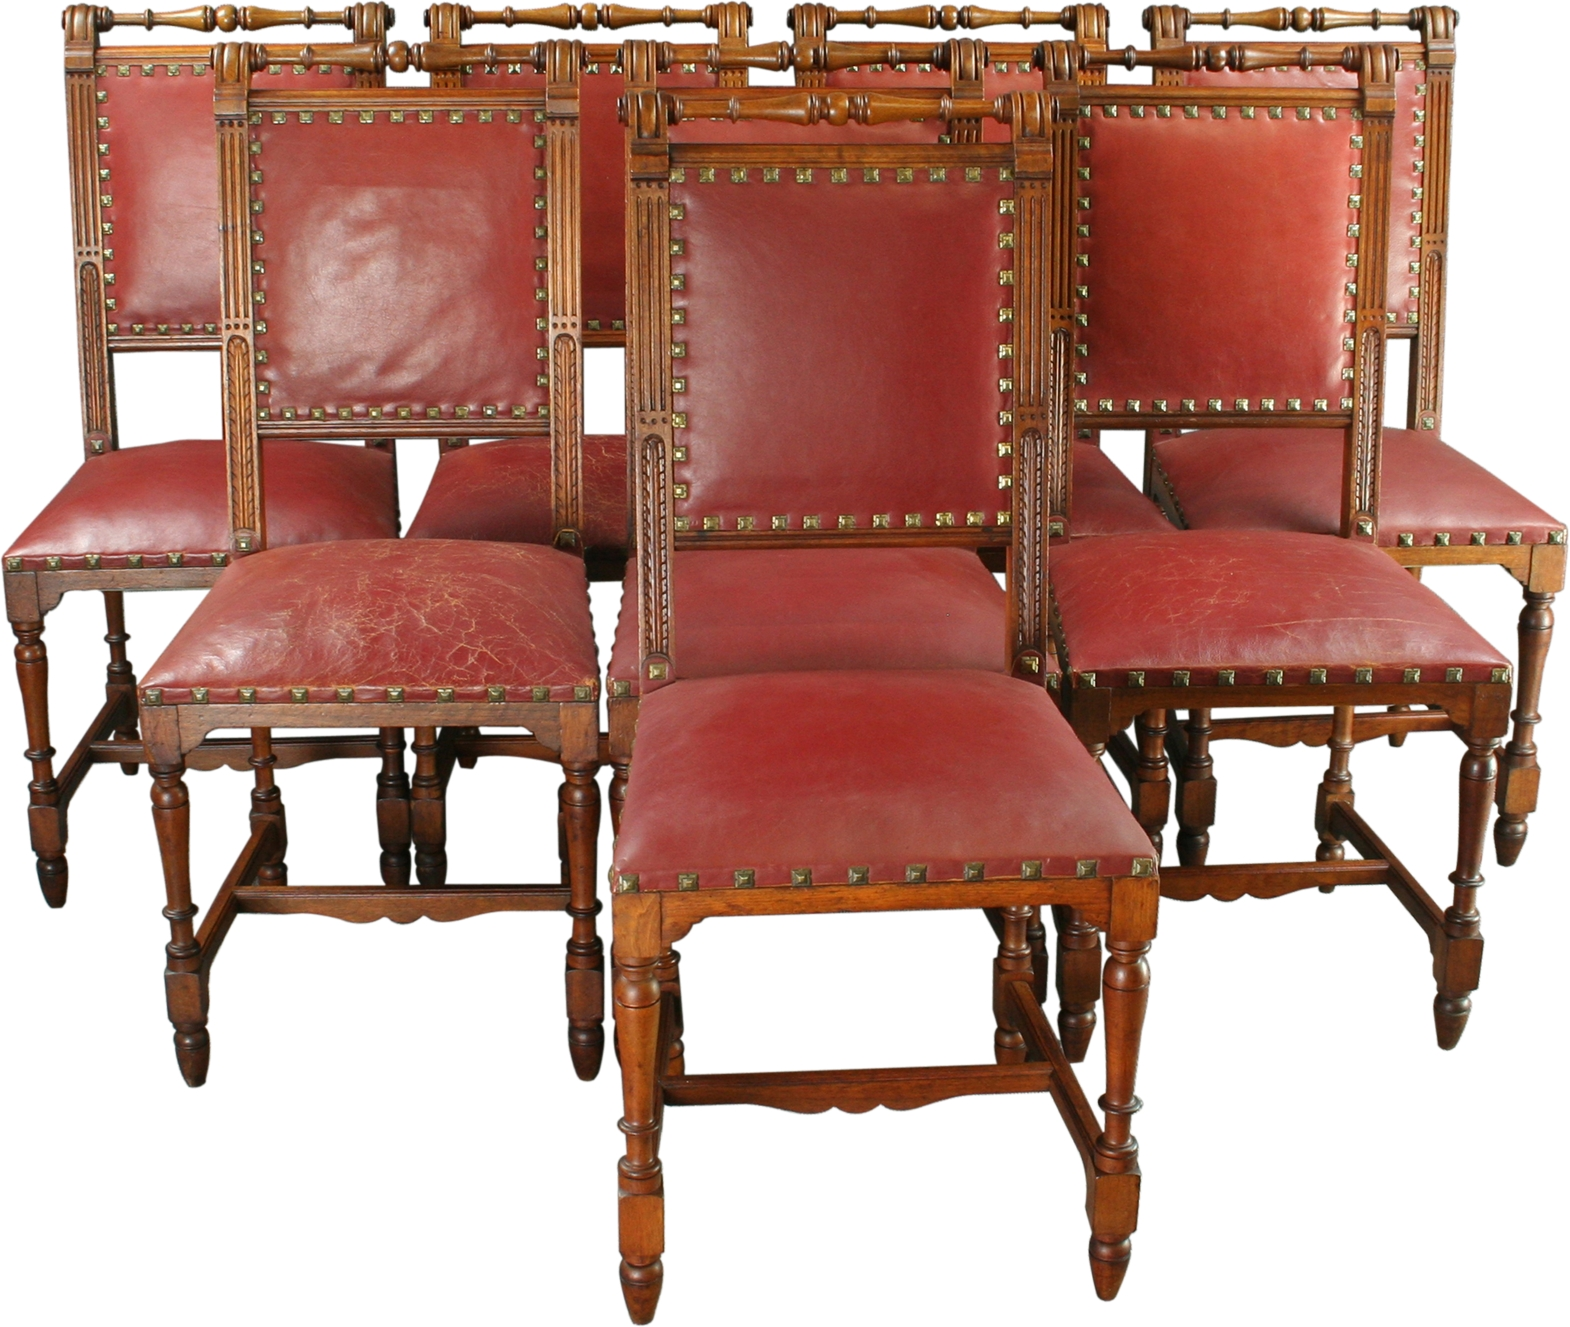 Red Leather Dining Room Chairs: ANTIQUE SET 8 FRENCH HENRY II WALNUT RED LEATHER